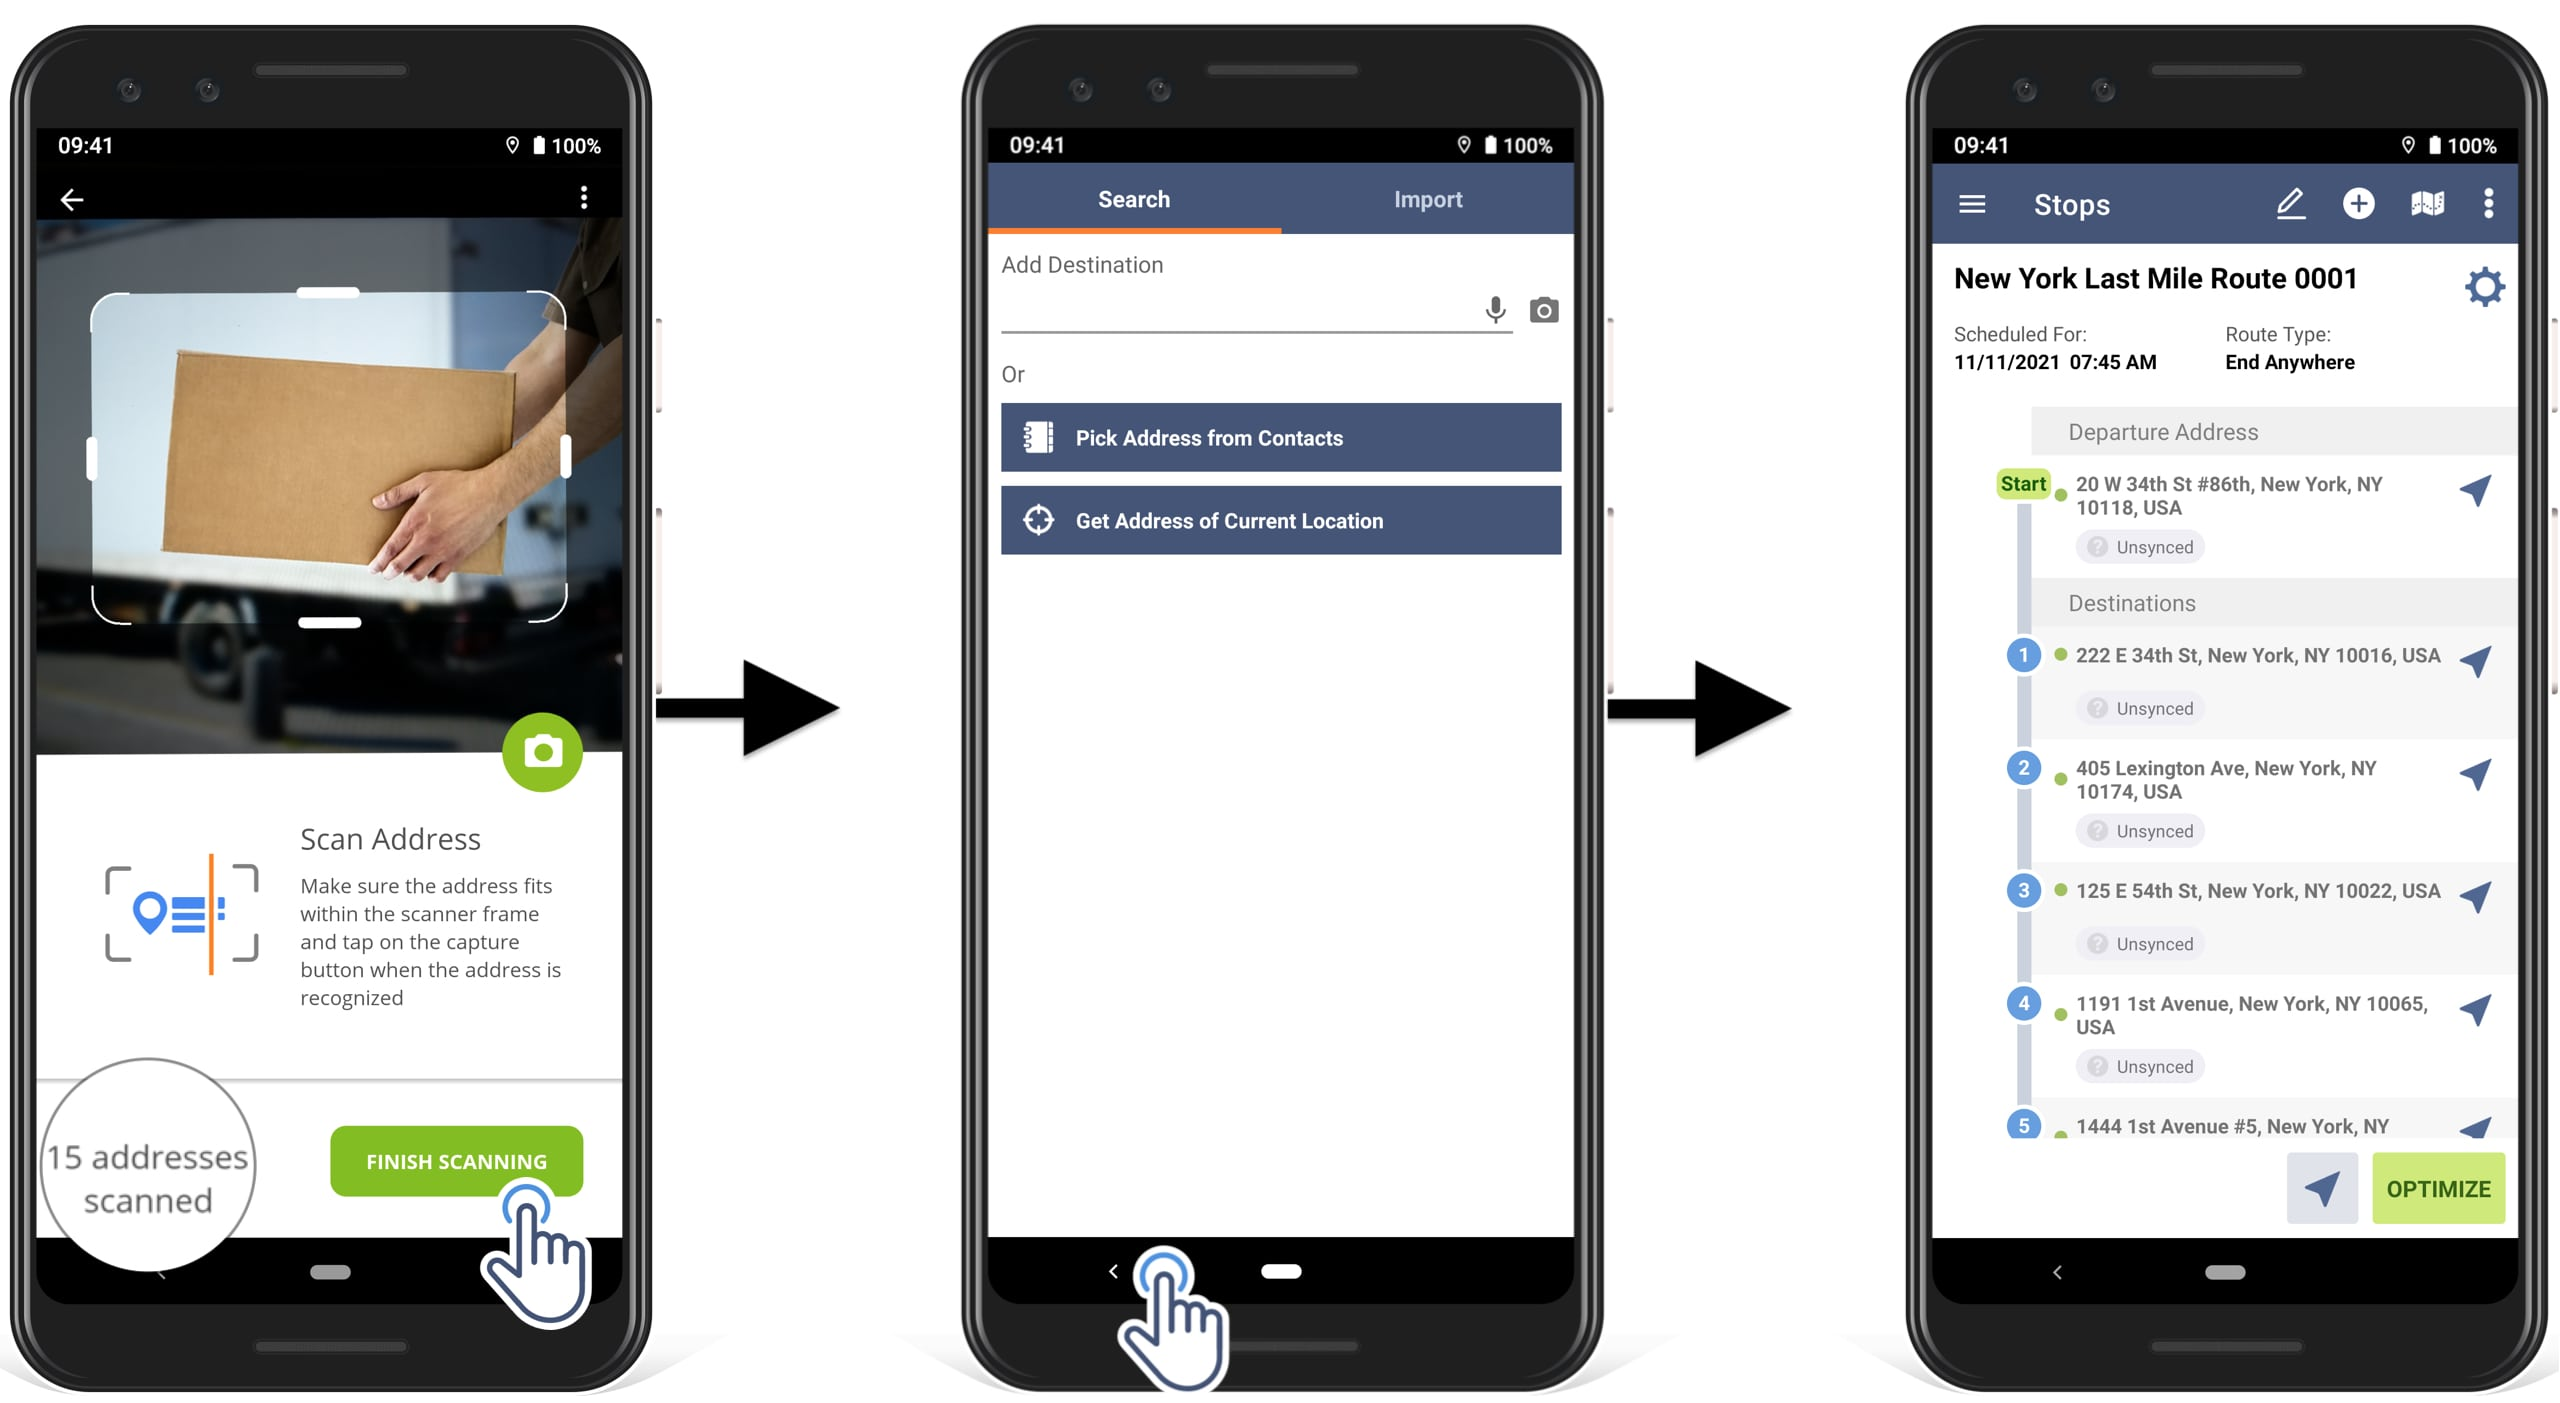 how to scan multiple addresses at a time to simultaneously add multiple scanned addresses to the route in Route4Me route planner app